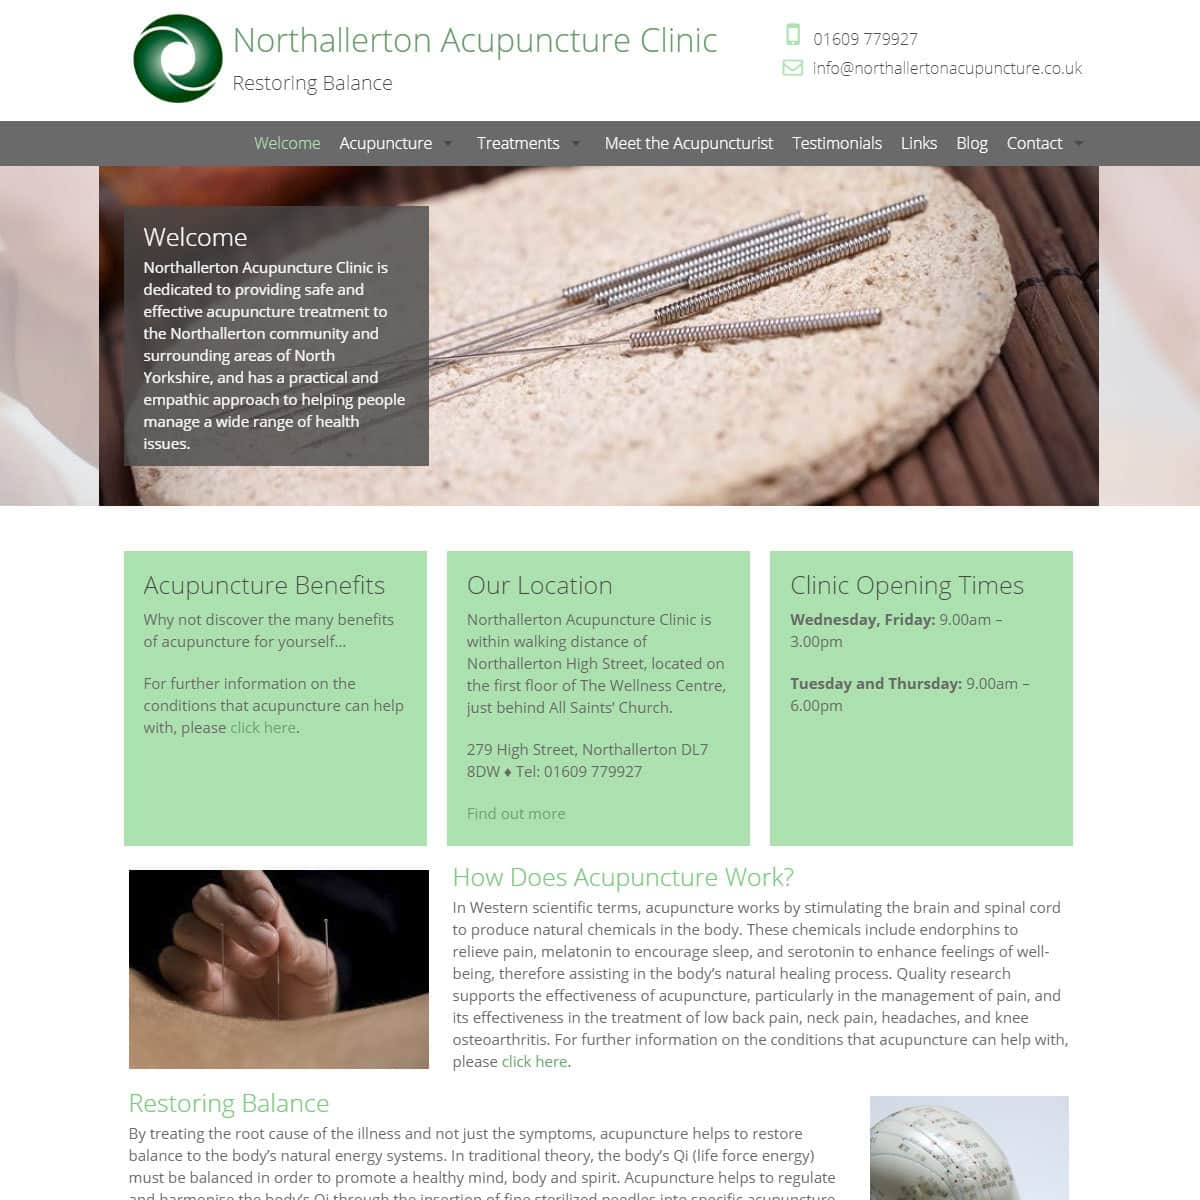 northallertonacupuncture